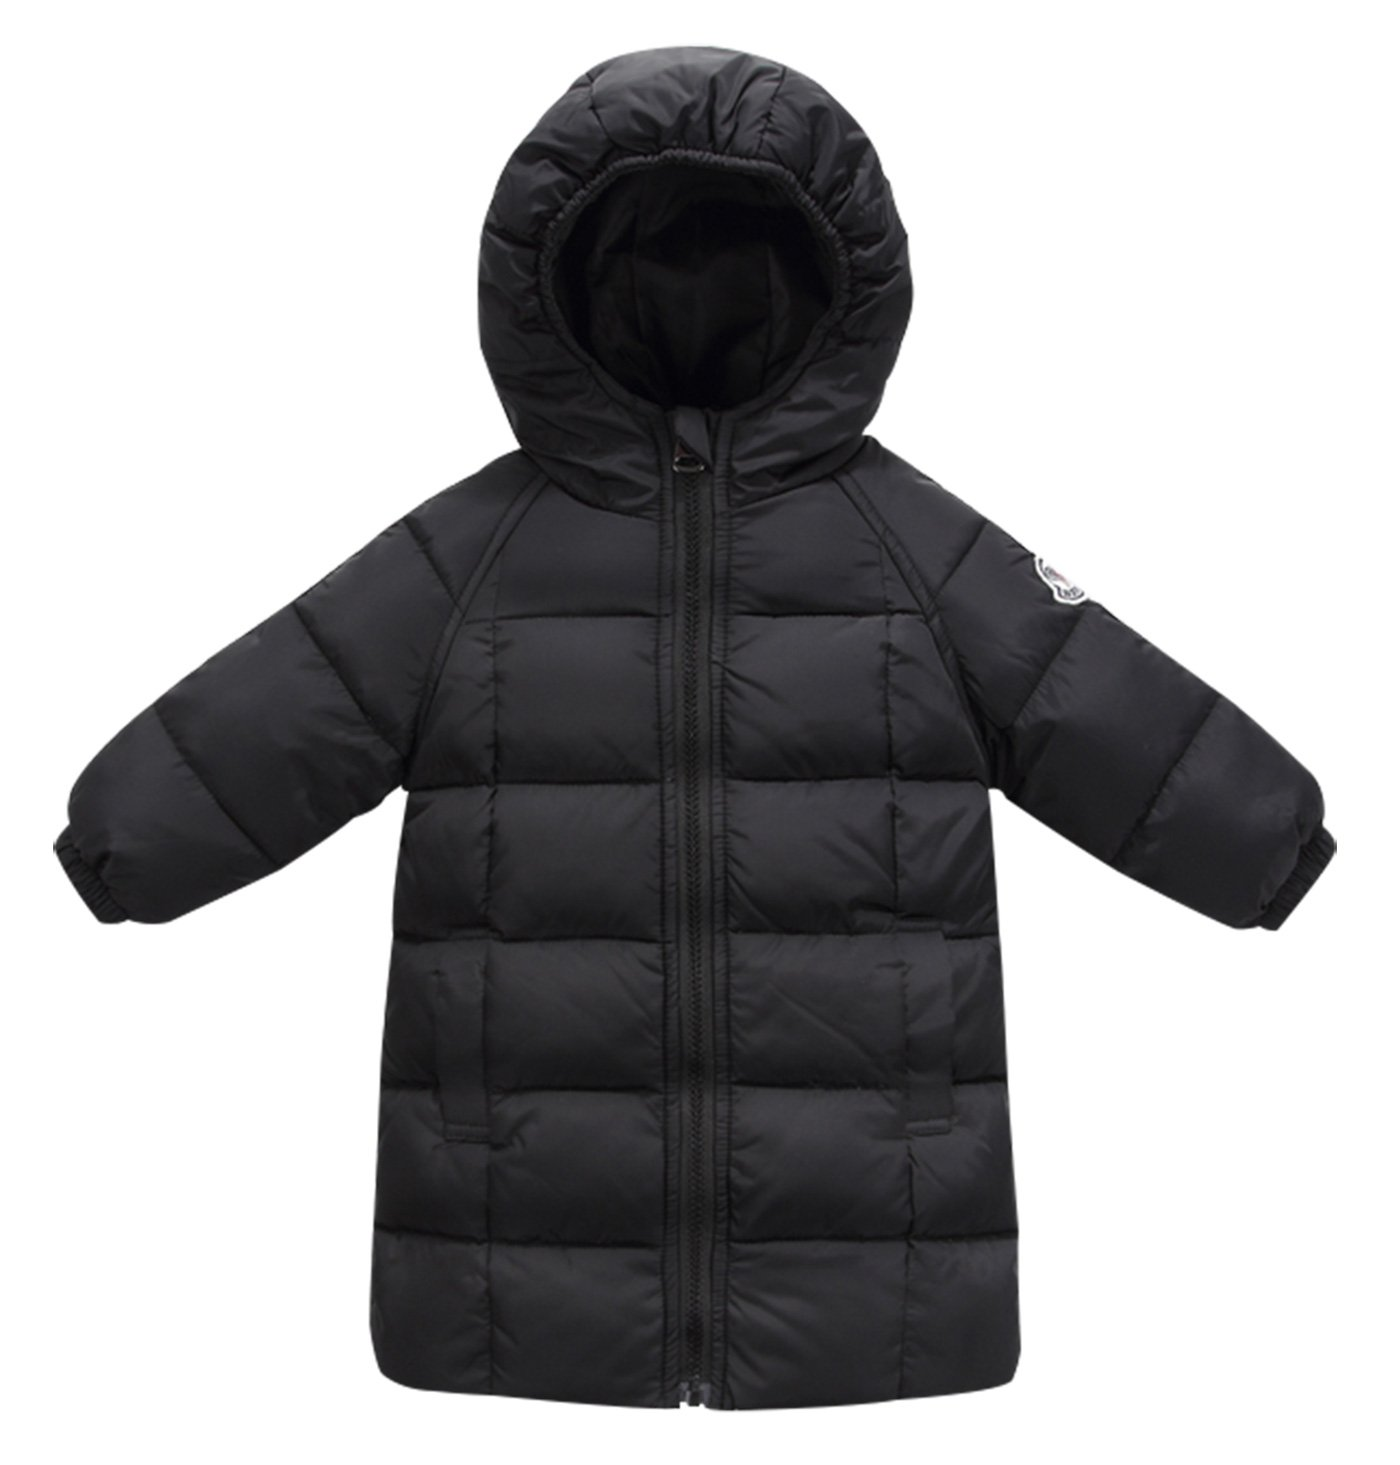 Happy Cherry Toddler Boys Winter Long Coat Down Puffy Jackets Winter Zipper Up Outwear with Pockets 2-3T Black by Happy Cherry